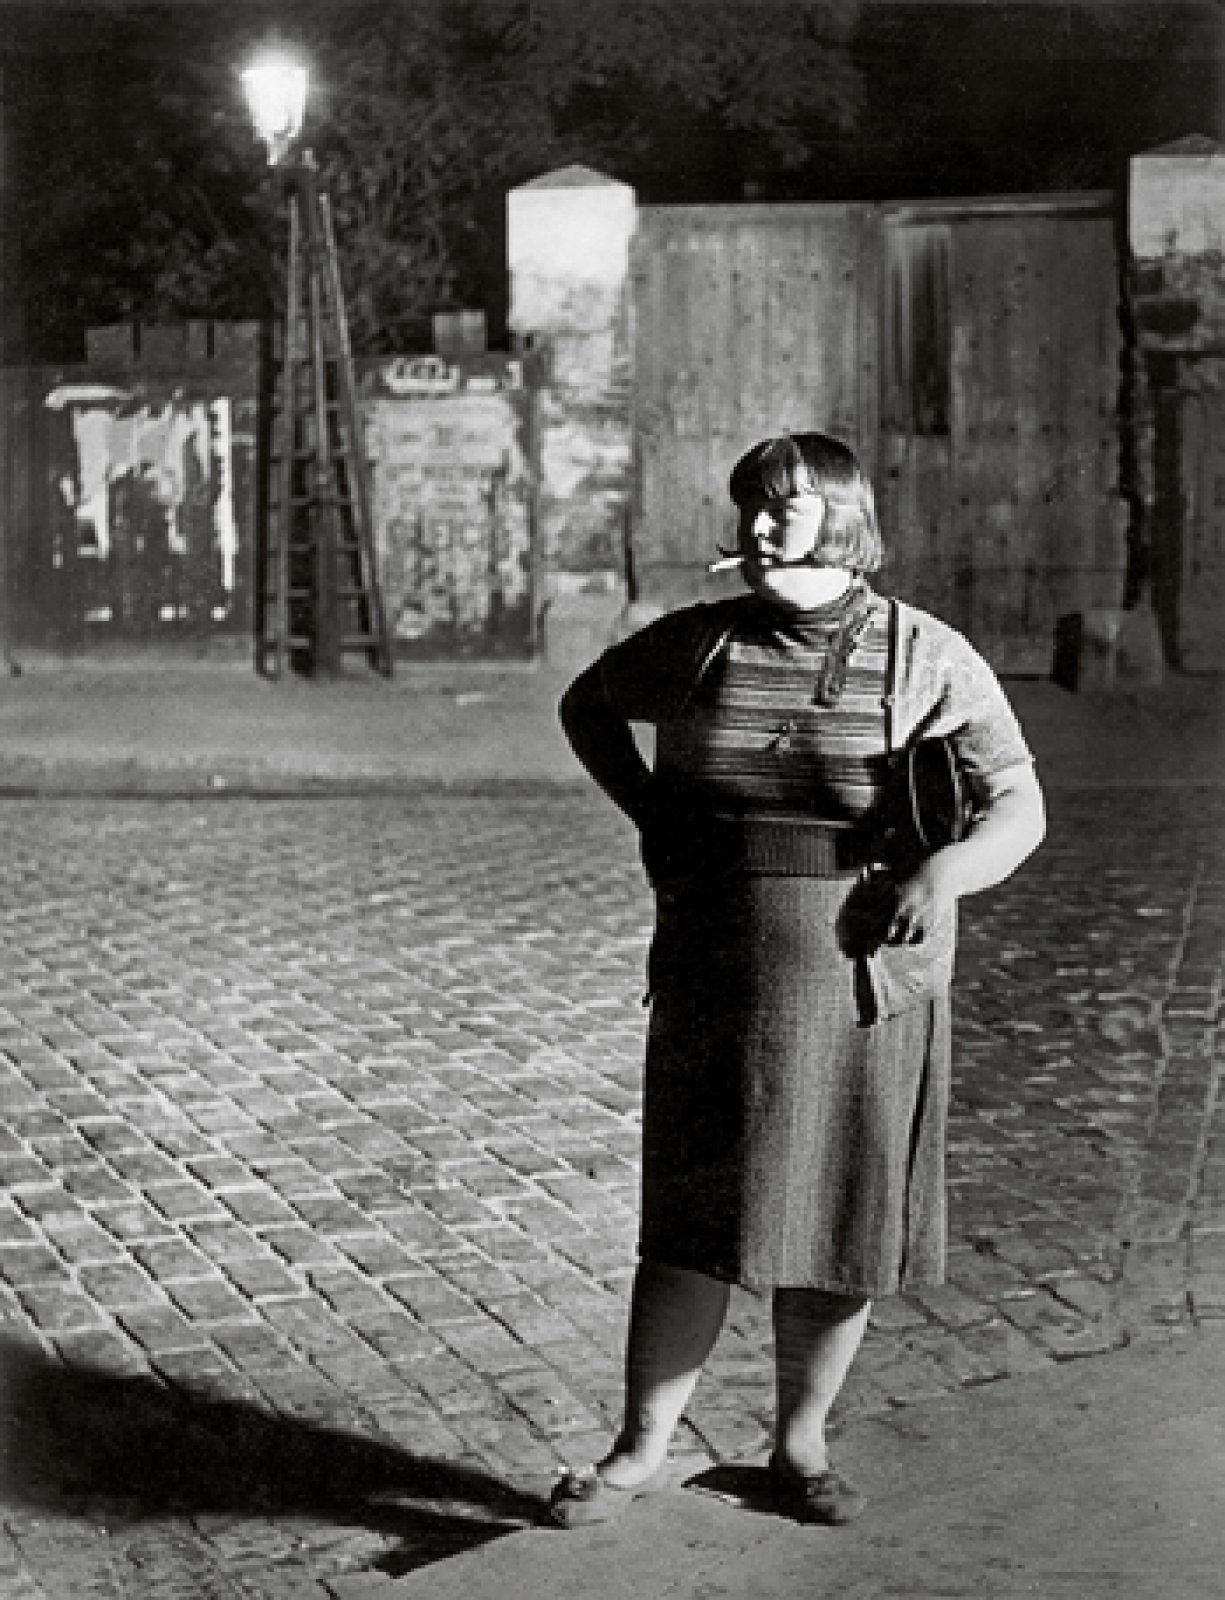 Streetwalker, near Place d'Italie, 1932 © Estate Brassaï Succession, Paris